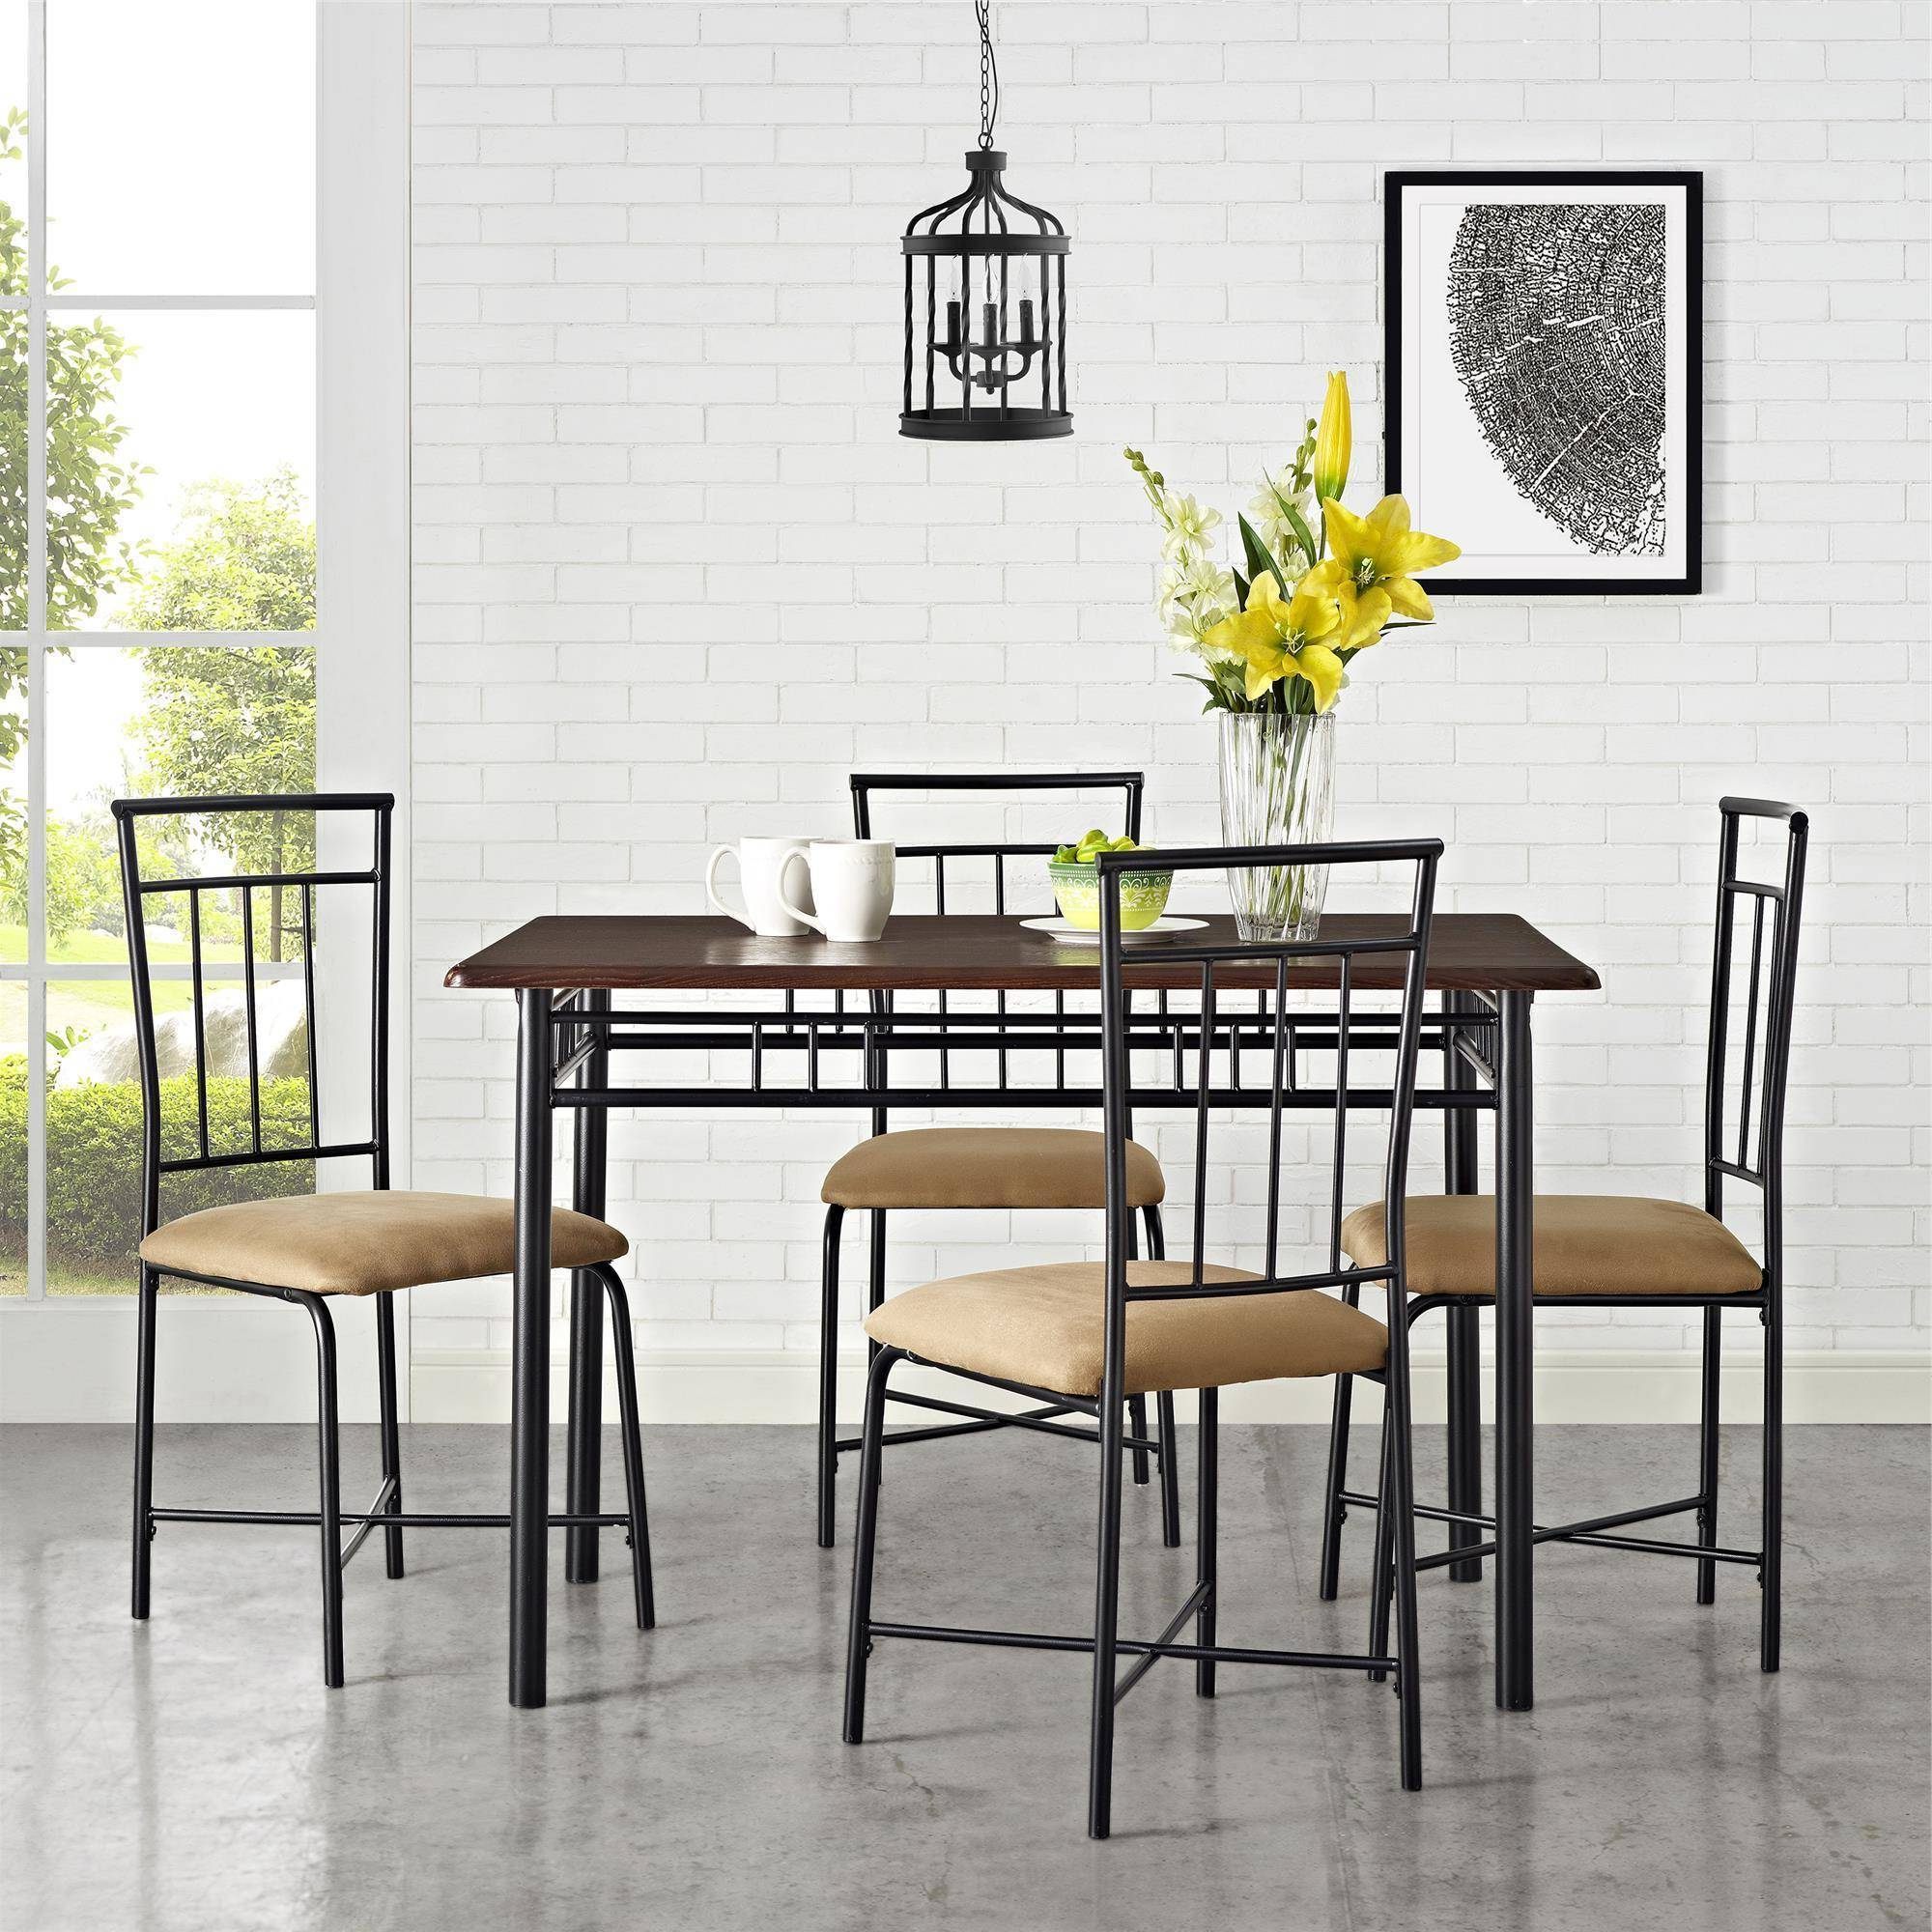 Mainstays 5 Piece Dining Set, Multiple Colors With Regard To Well Liked West Hill Family Table 3 Piece Dining Sets (View 10 of 20)